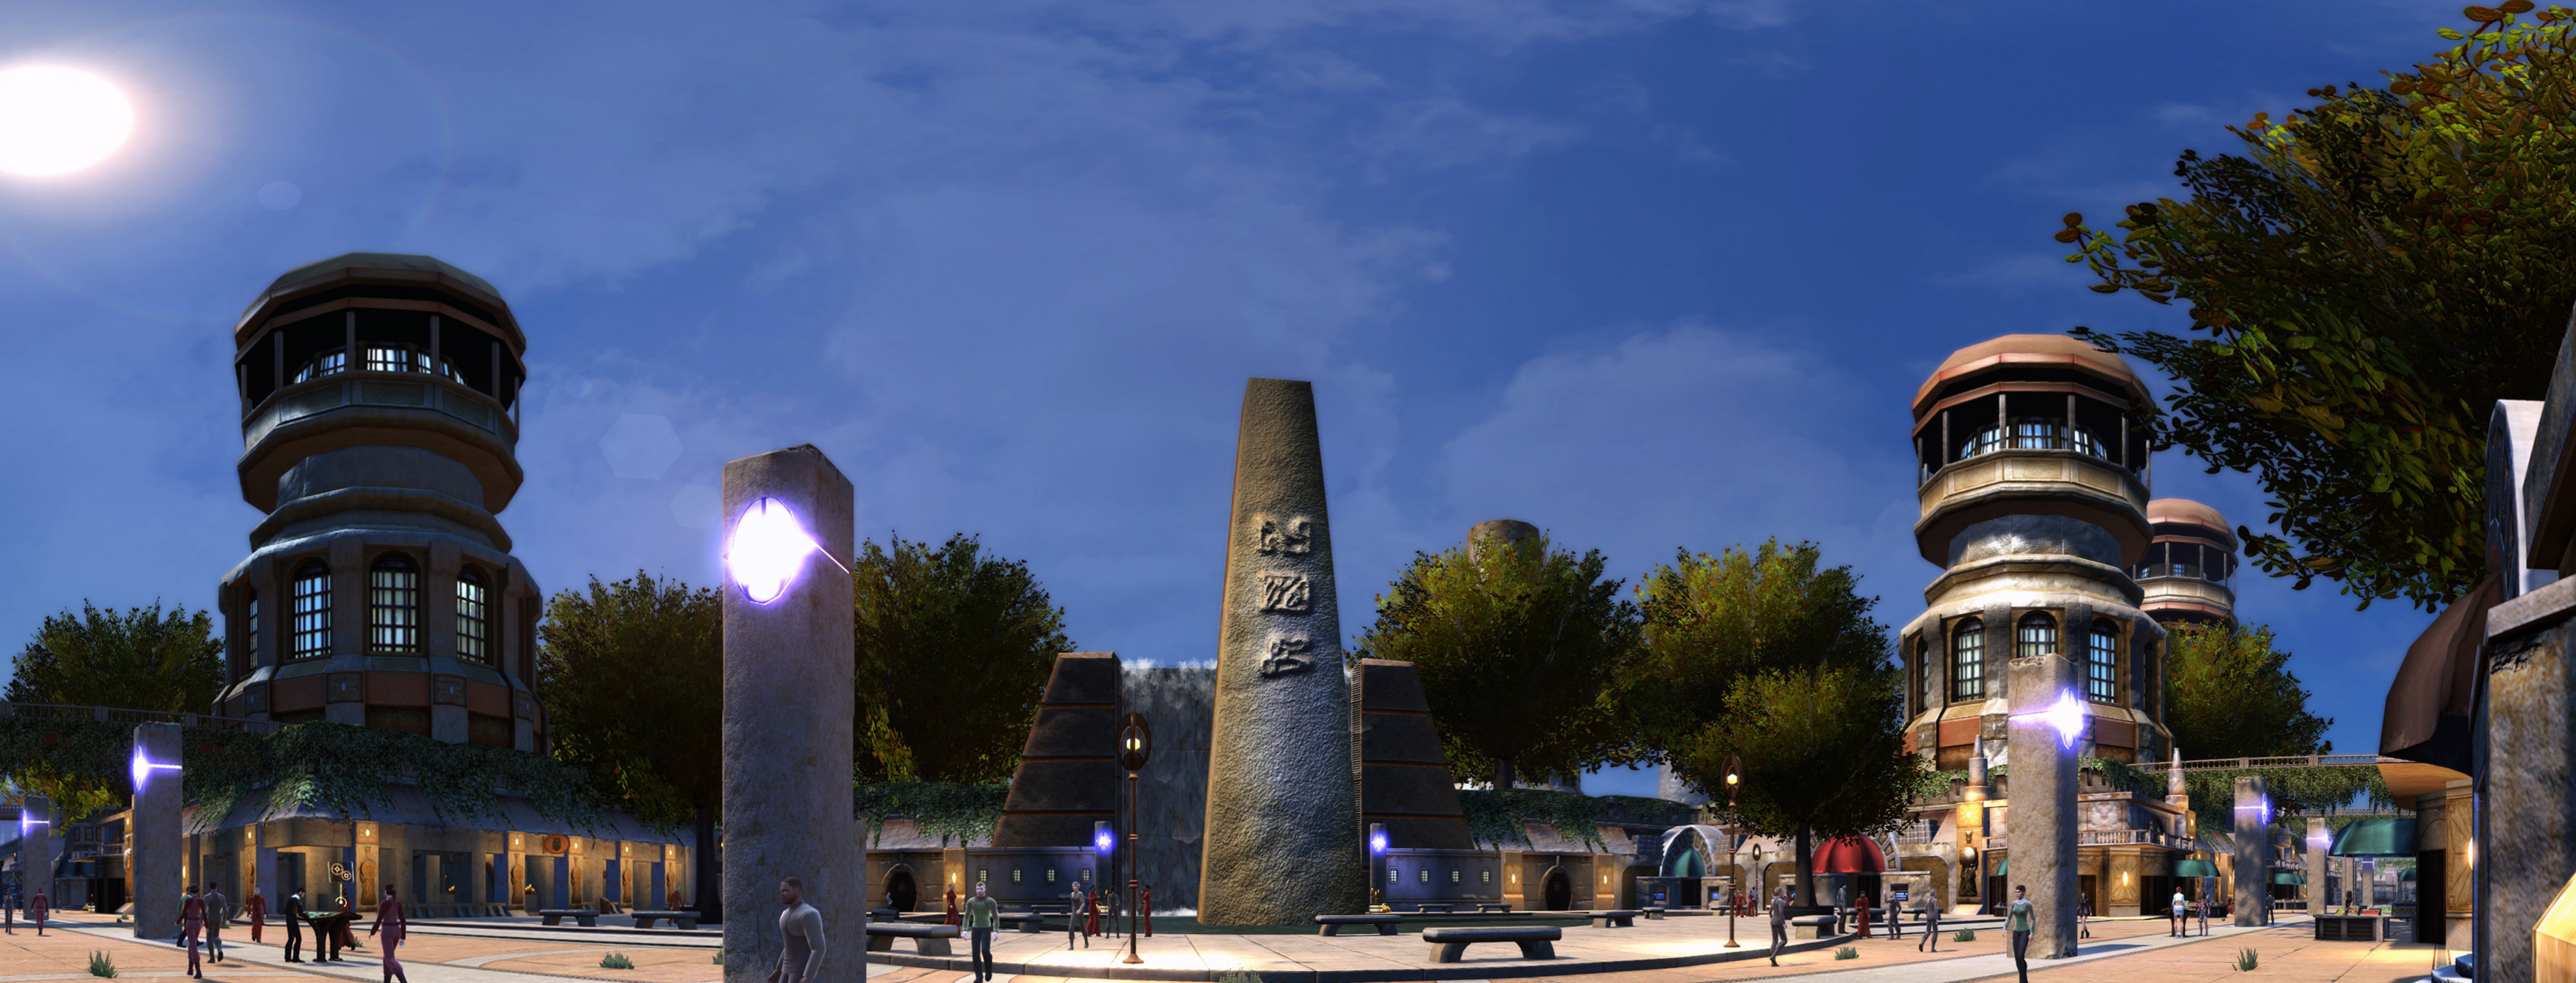 Hathon-central square-panorama.png